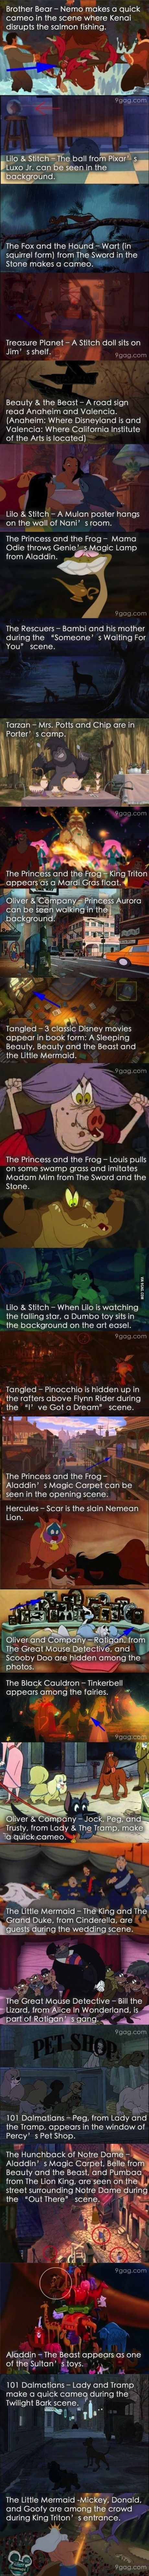 Hidden gems in Disney movies